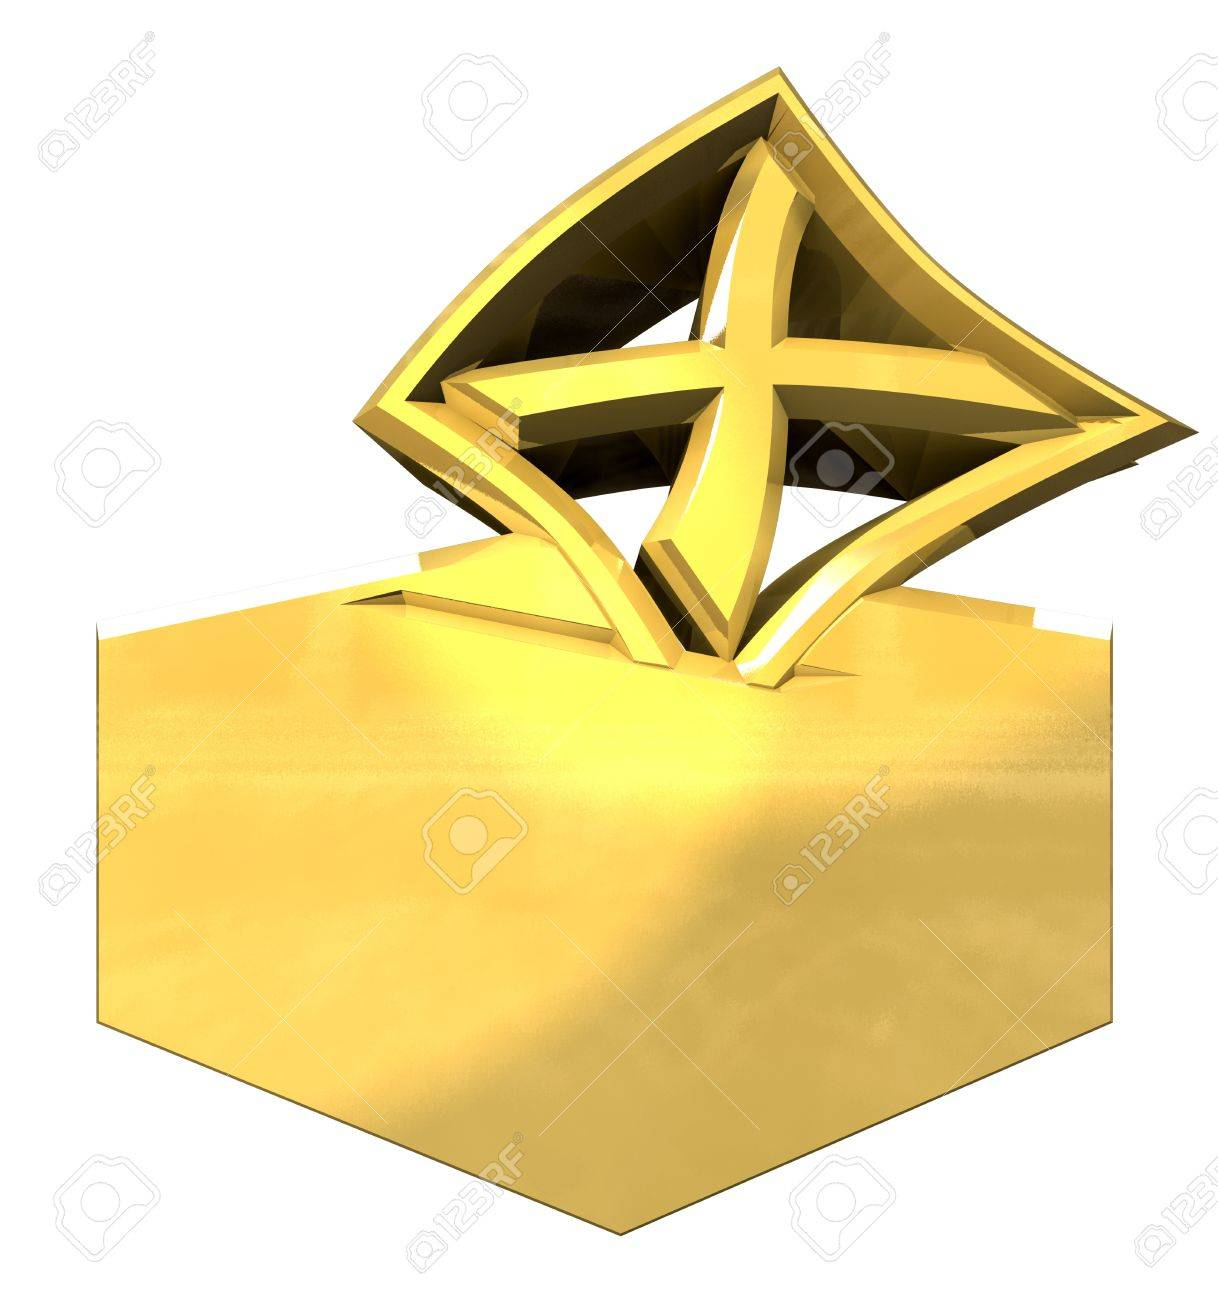 Symbol of placing a voting slip into a ballot box over a white background Stock Photo - 8574651